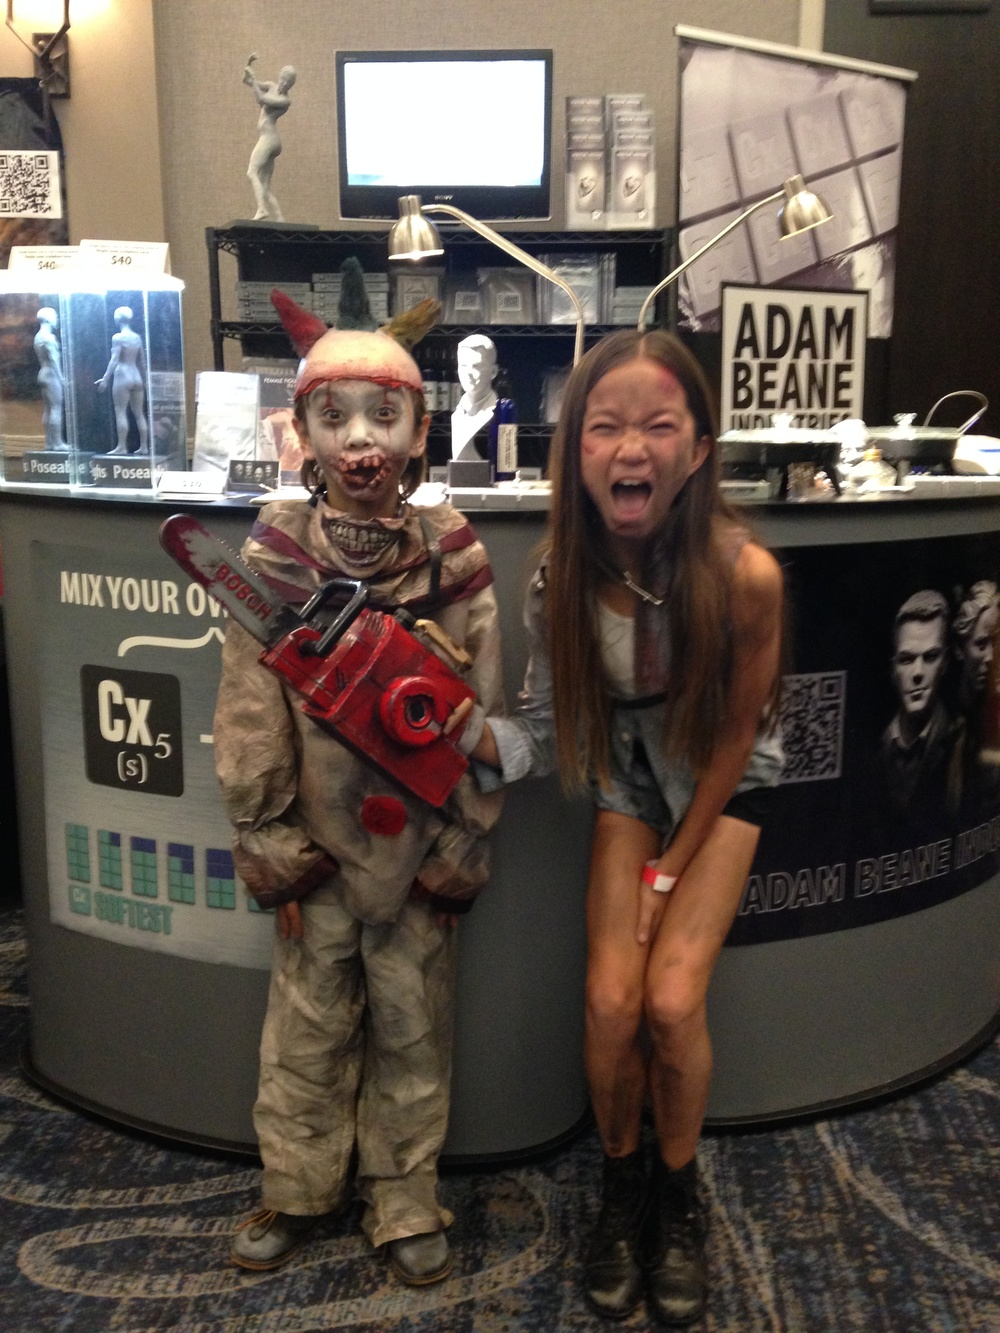 Ash(ley) and her zombie brother stopped by our booth